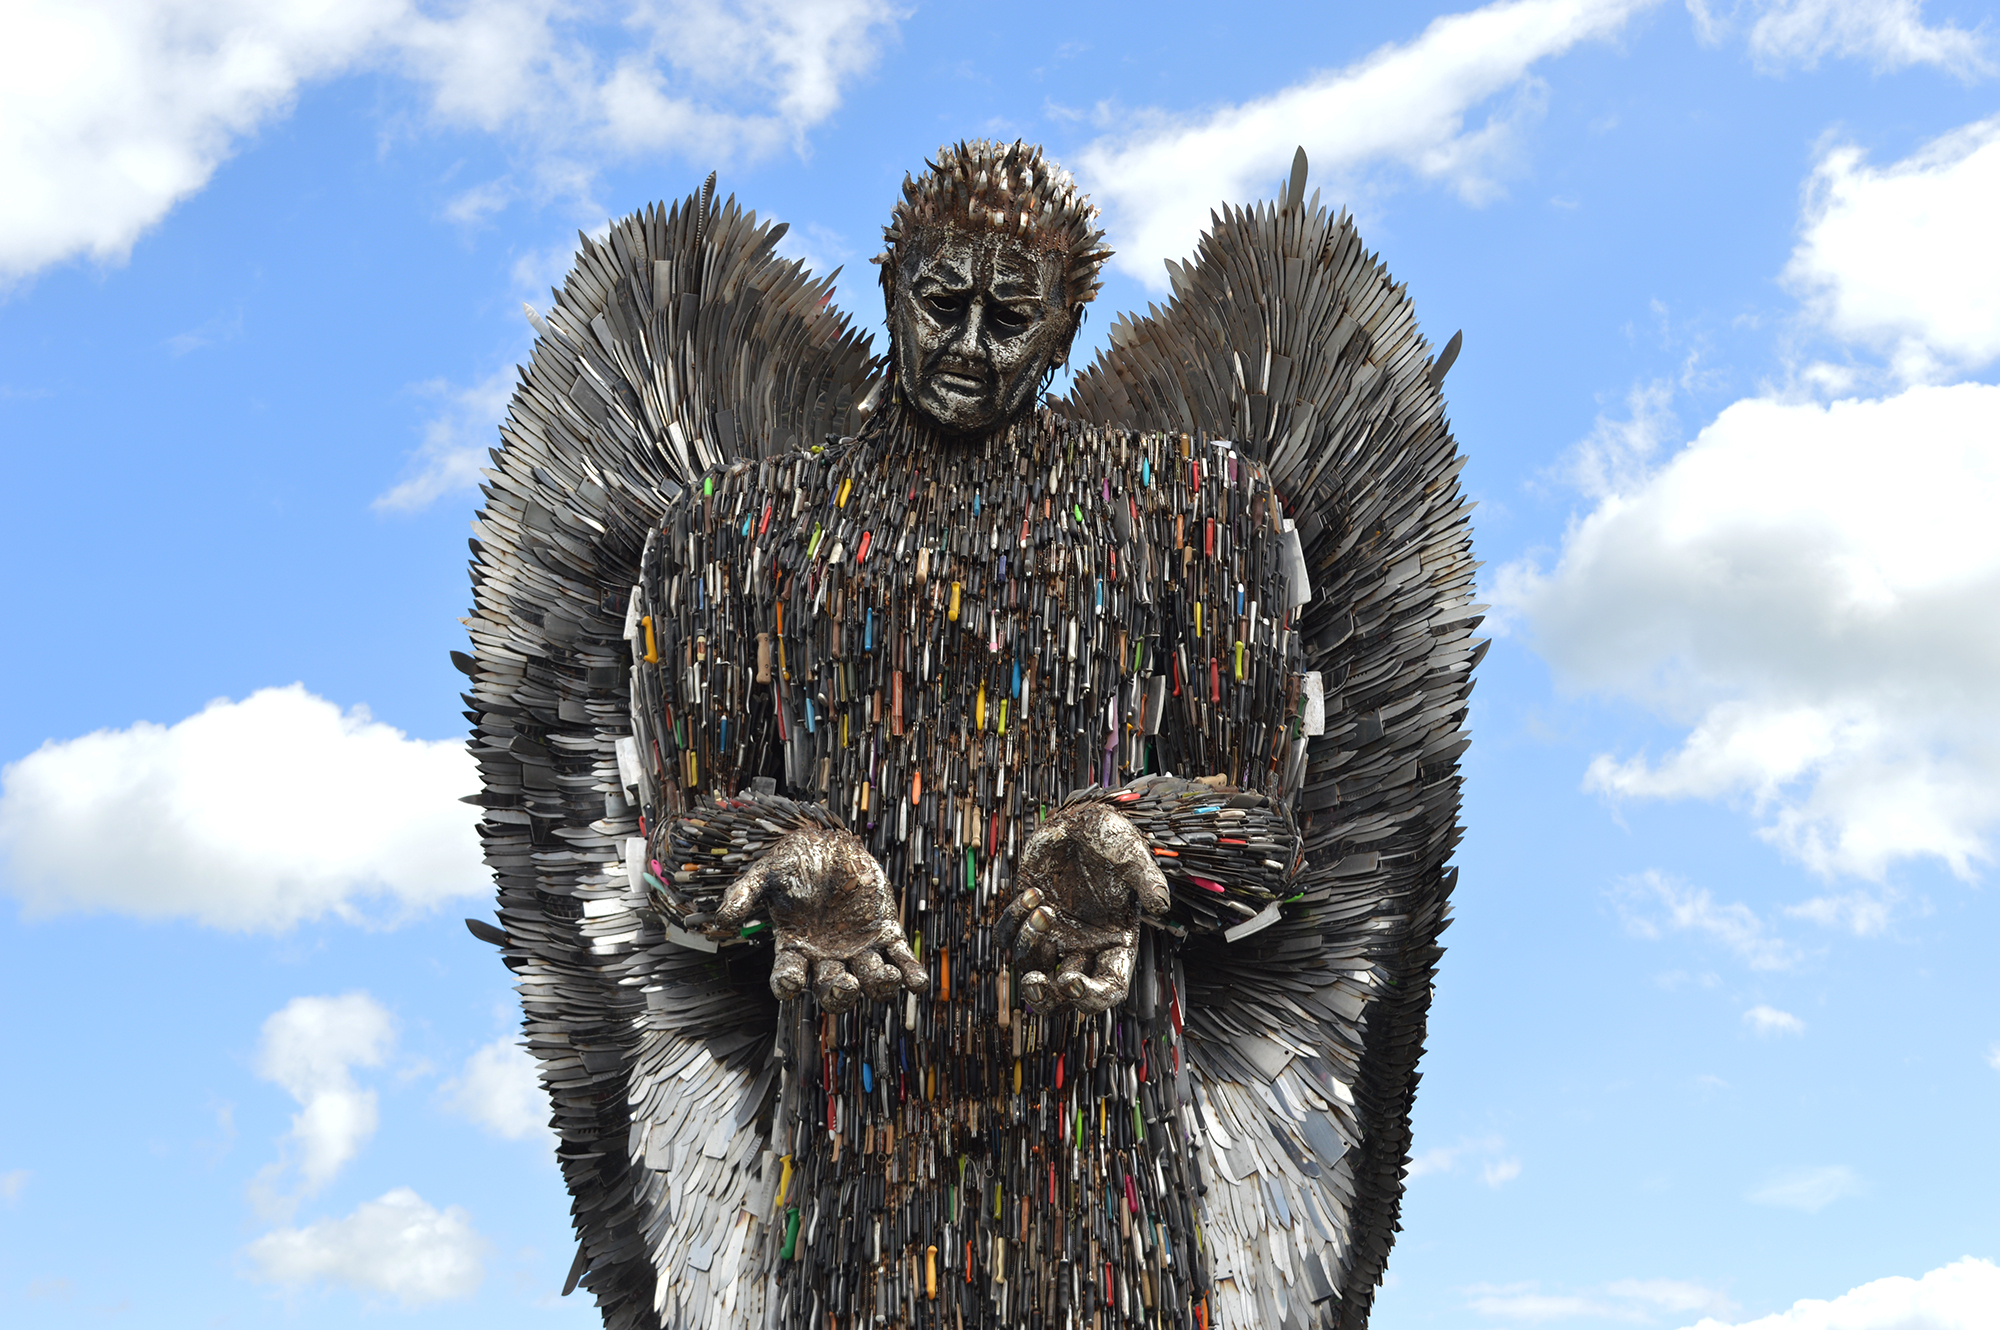 Call-out for artists to welcome Knife Angel sculpture to Birmingham